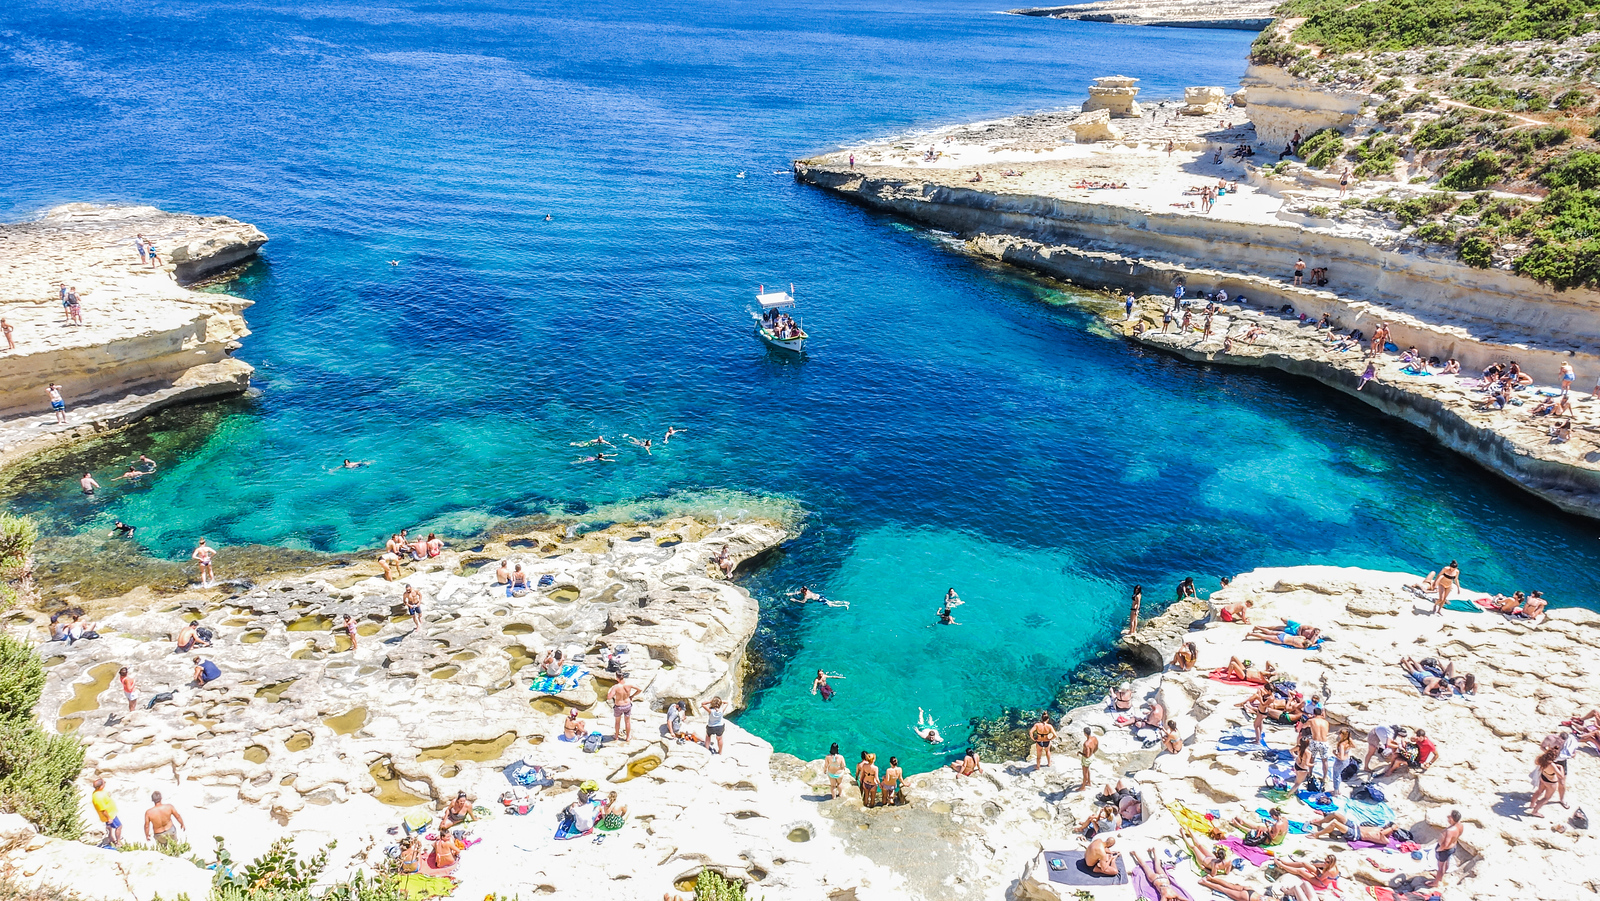 St Peter's pool - Malta